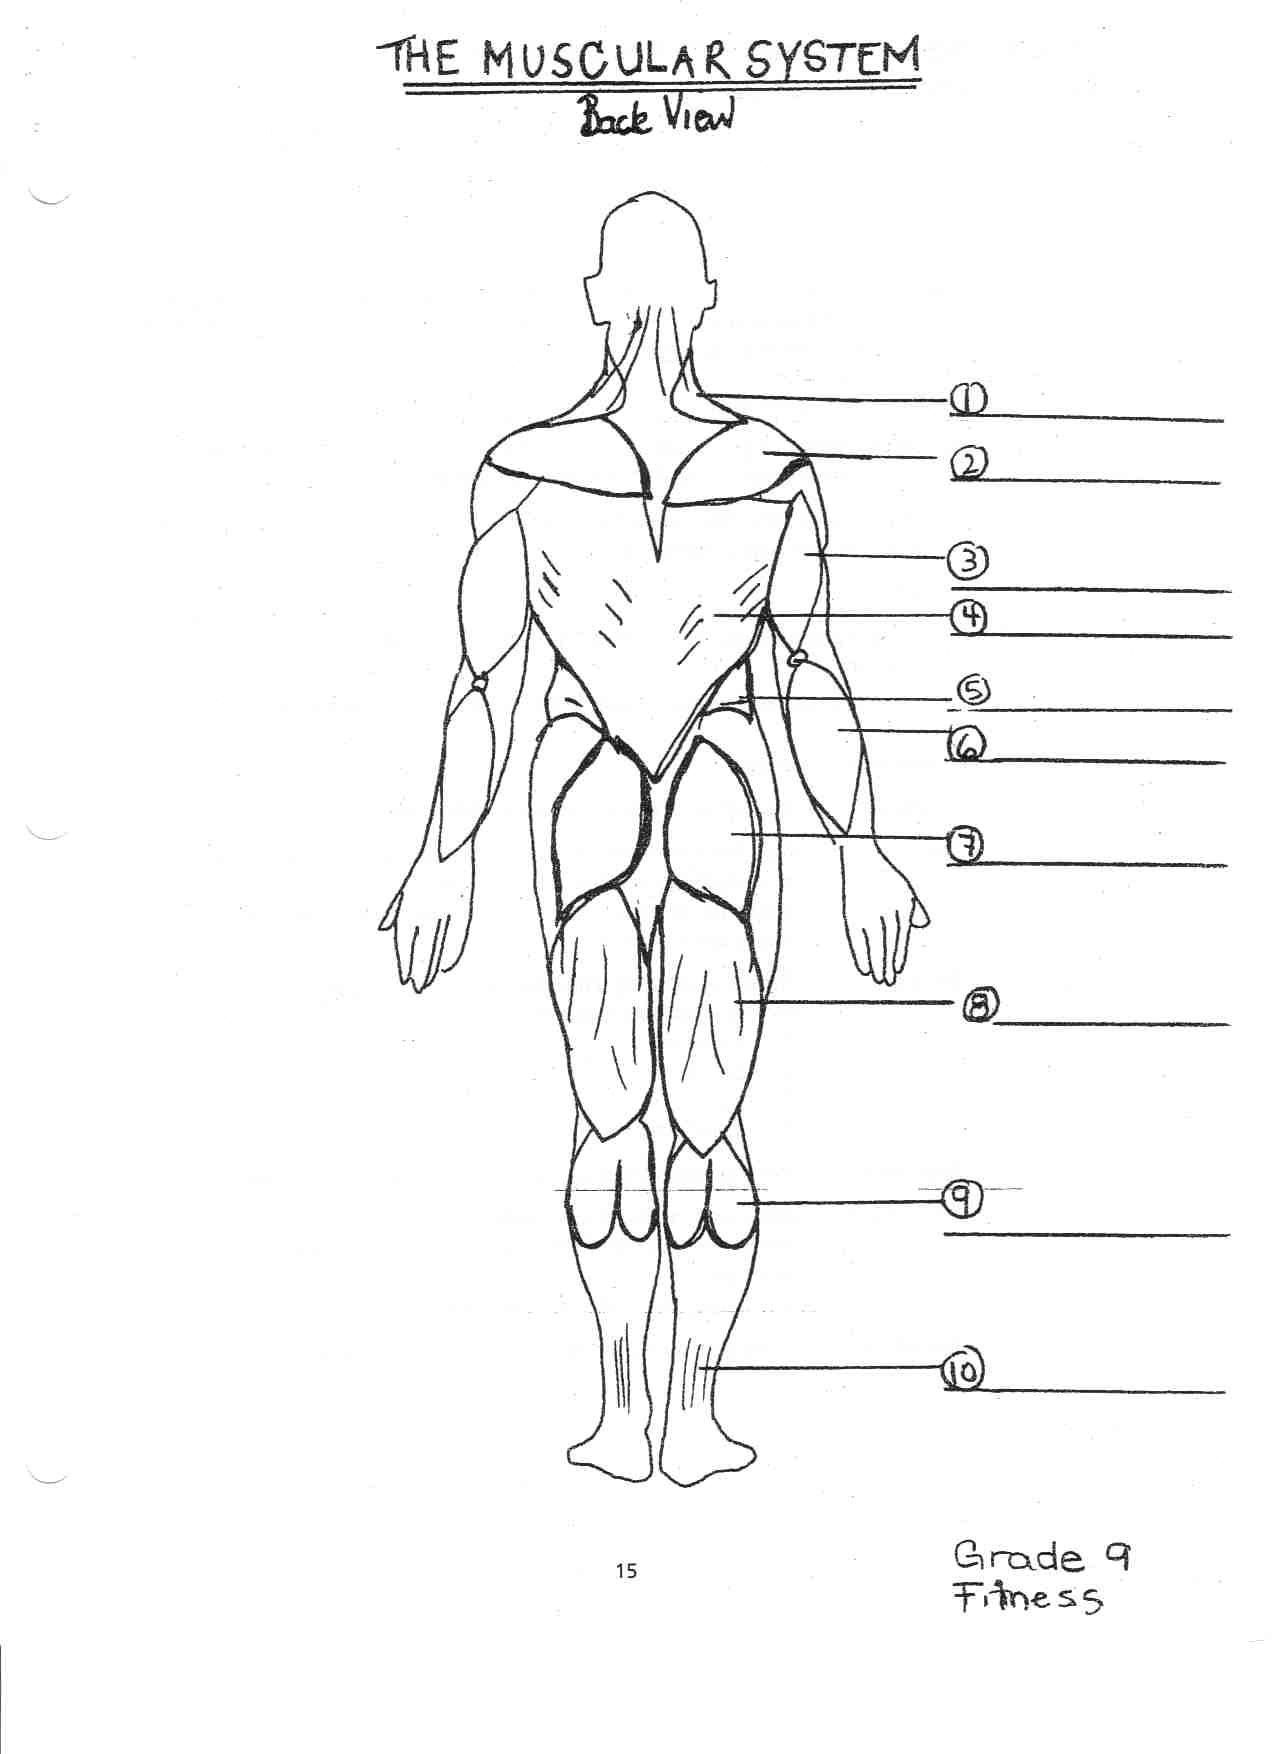 unlabeled muscular system diagram unlabeled muscular system diagram 40 fresh human anatomy muscular system body [ 1275 x 1754 Pixel ]